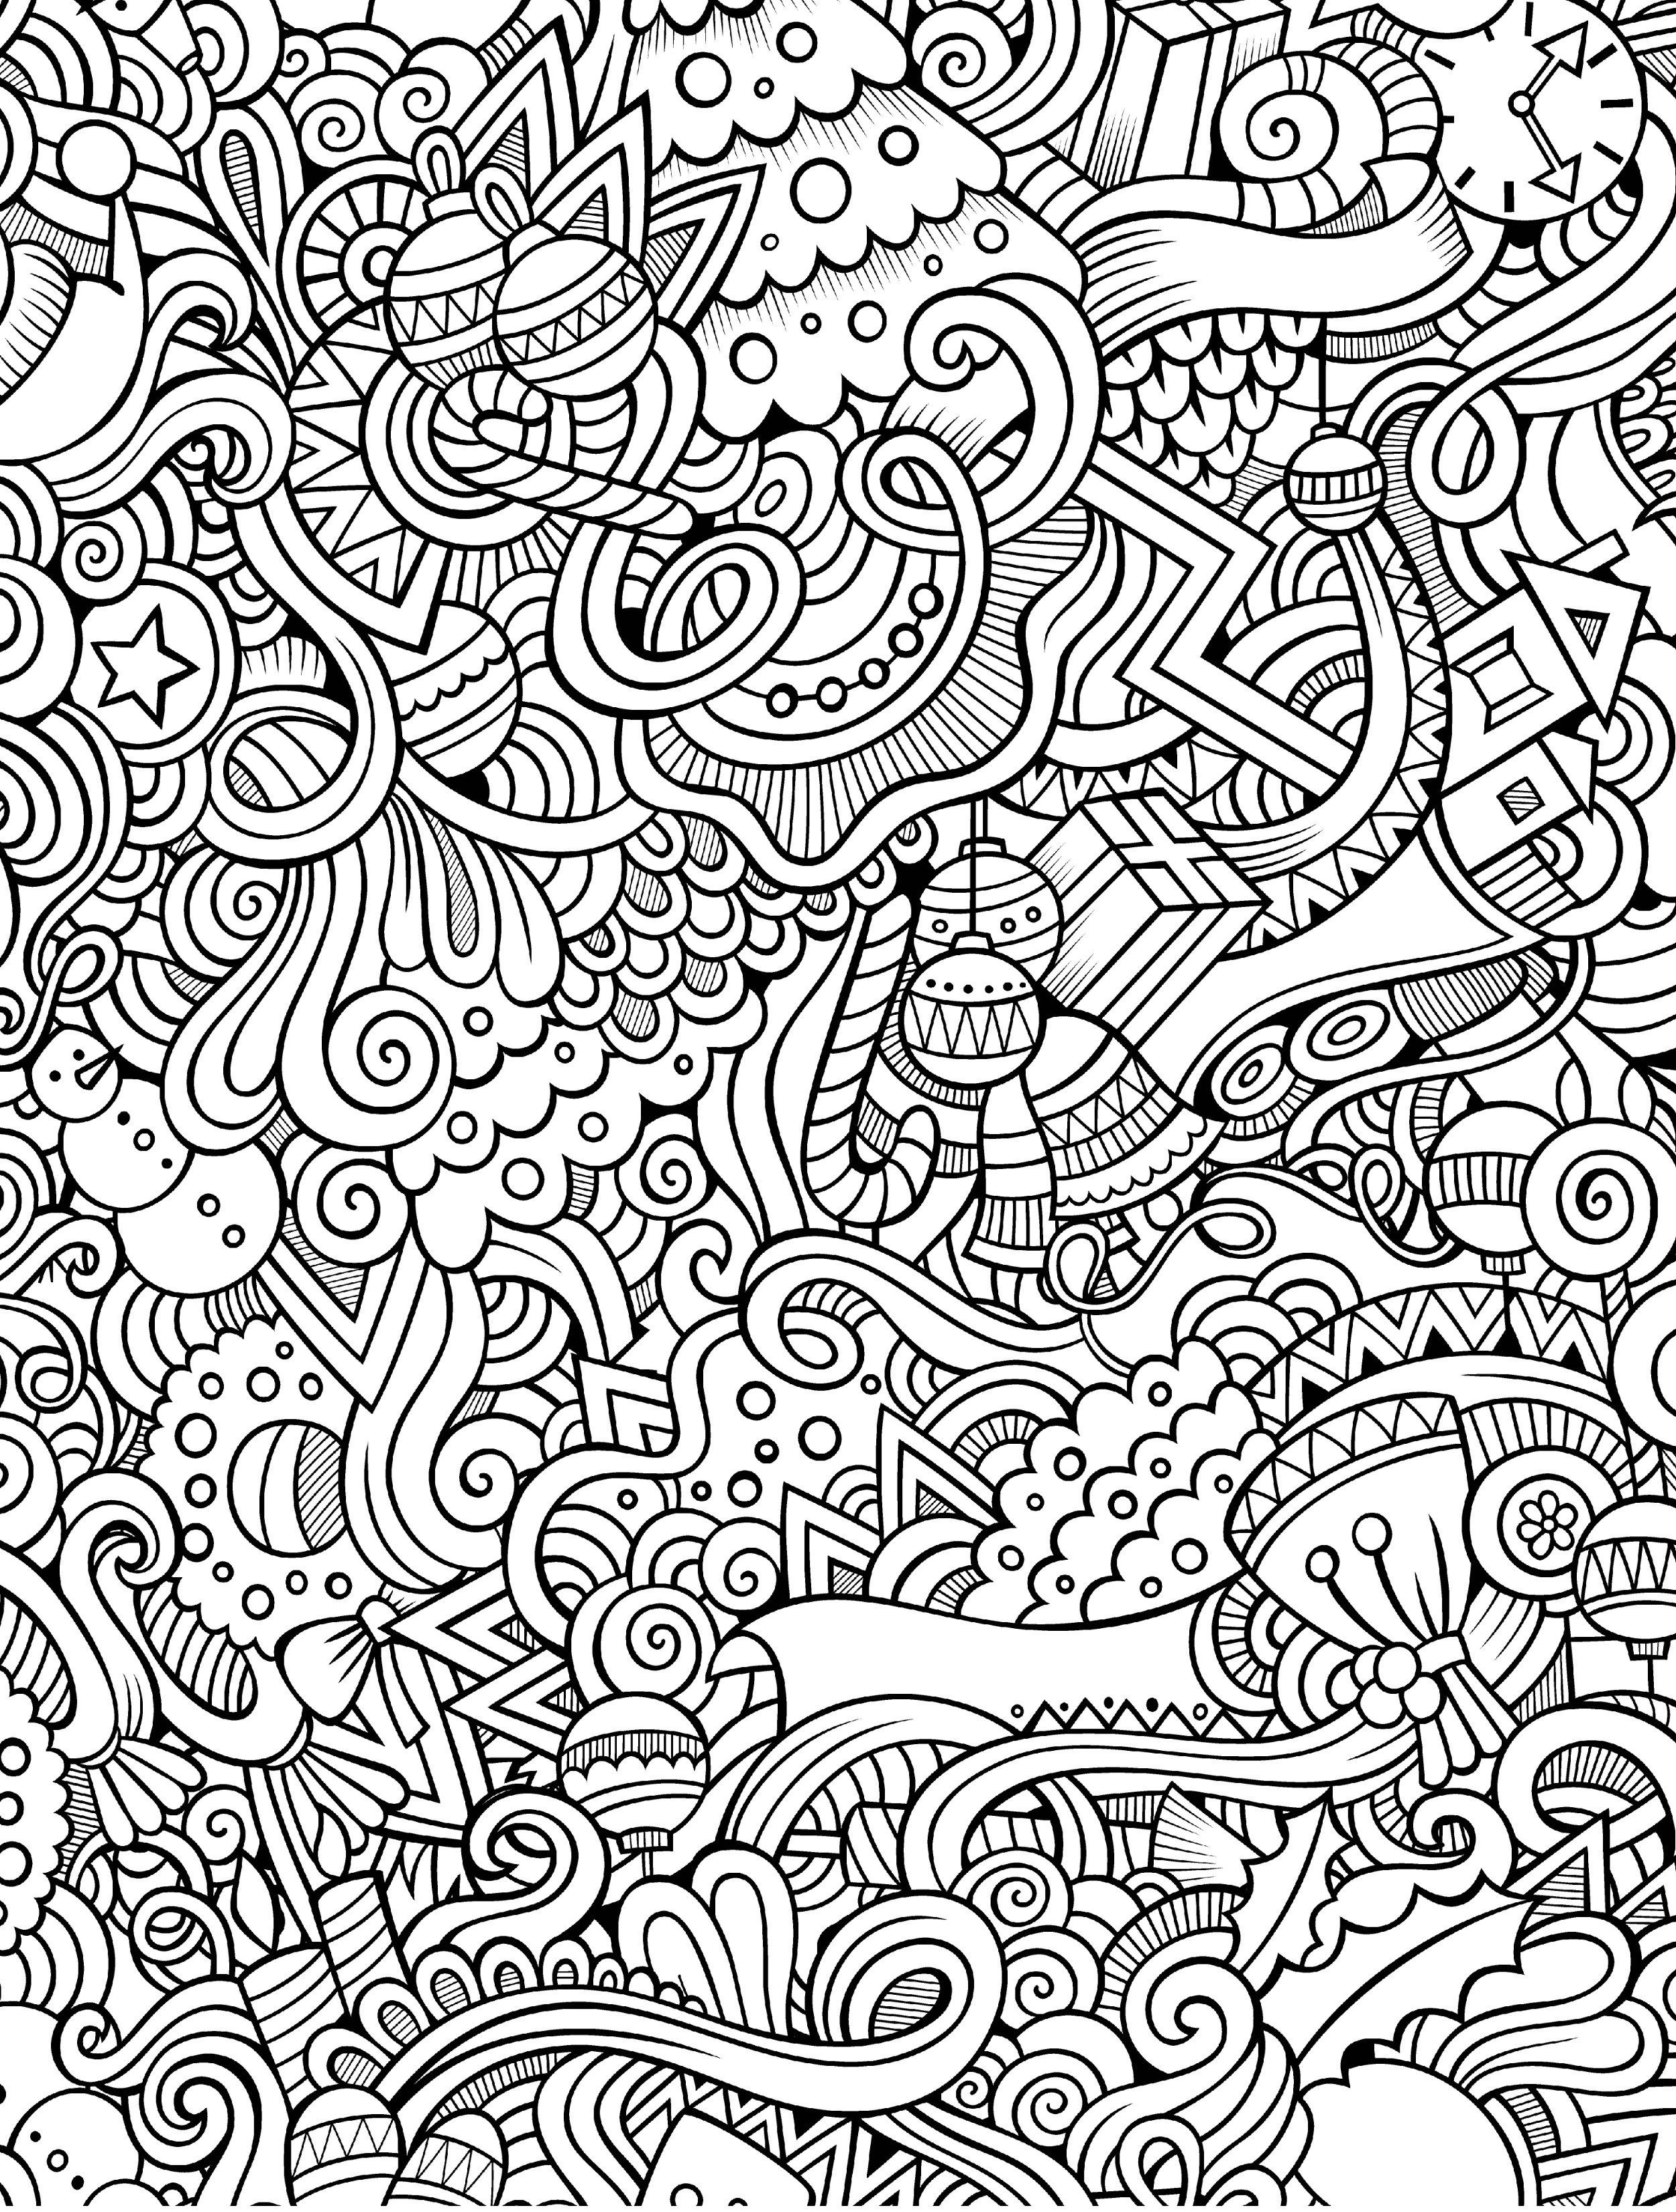 Free Printable Christmas Coloring Book Pages With 10 Holiday Adult